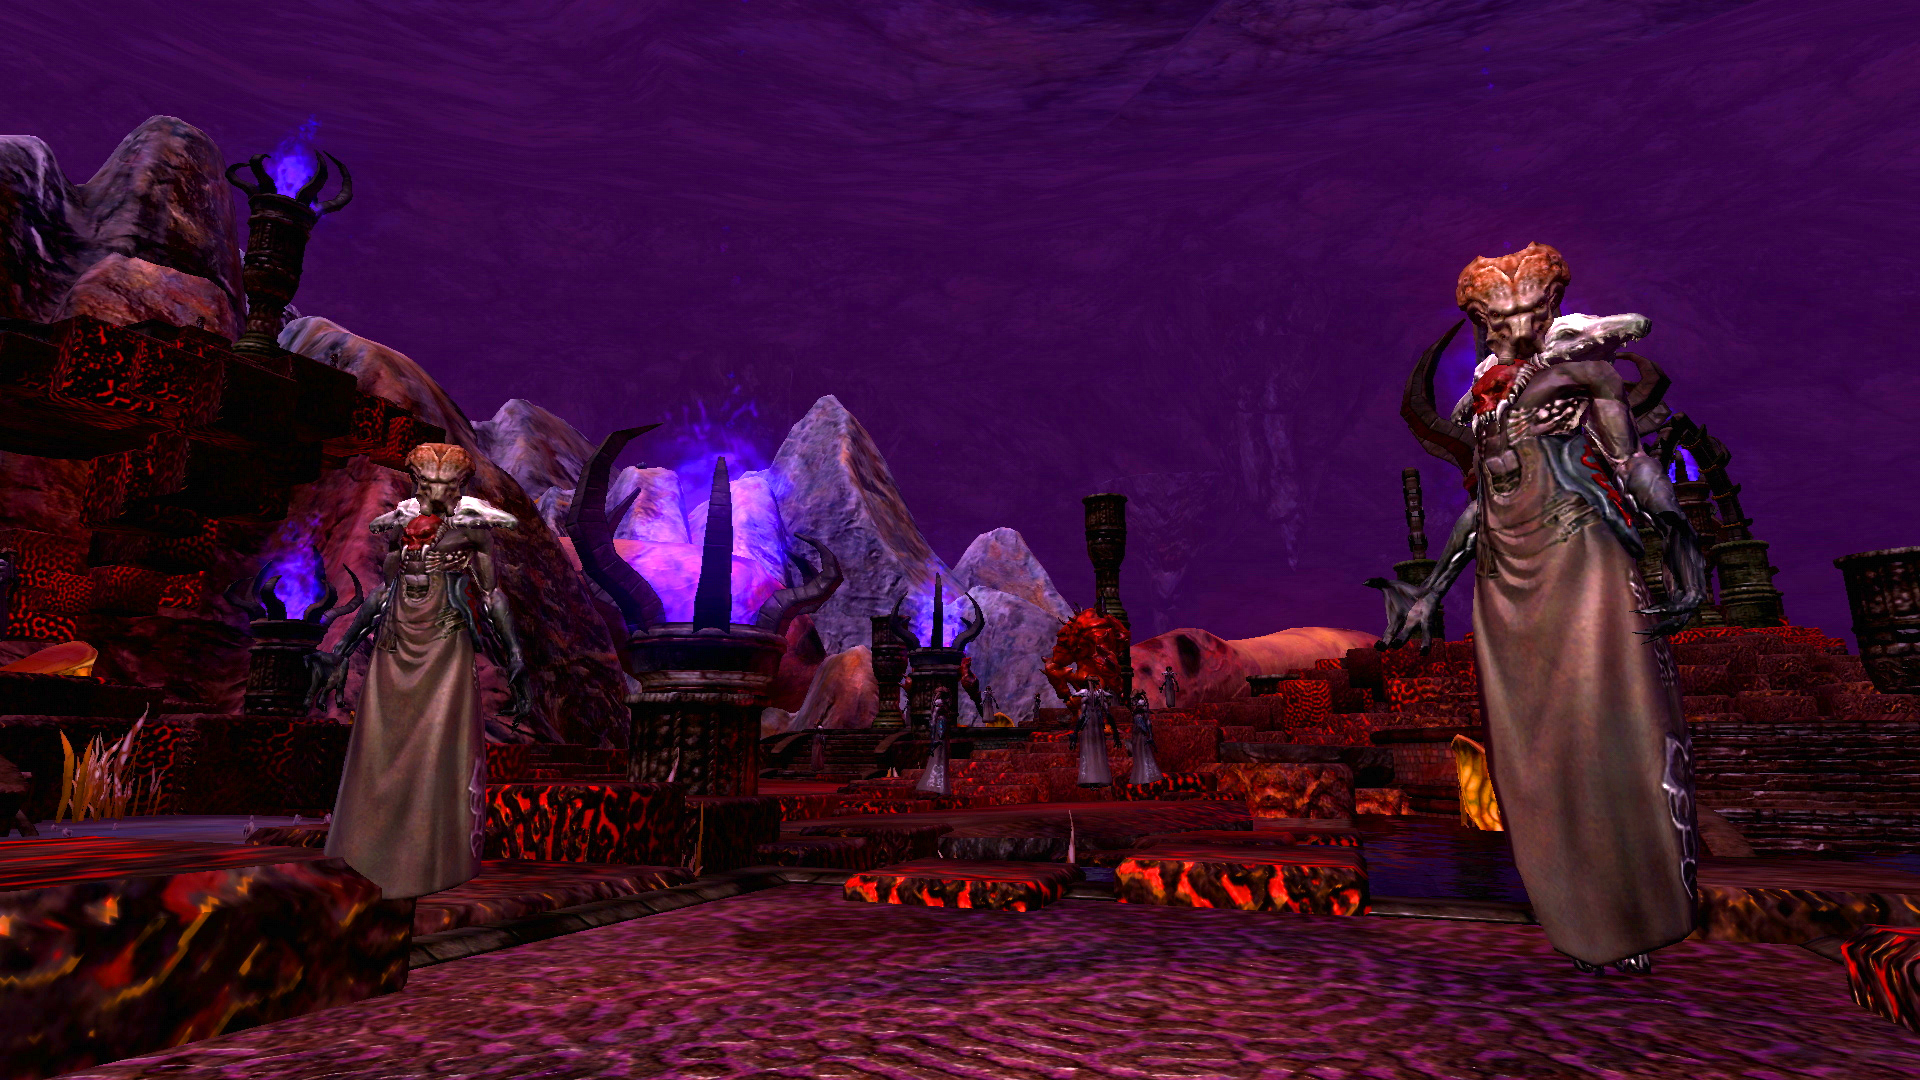 EverQuest II : Terrors of Thalumbra on Steam